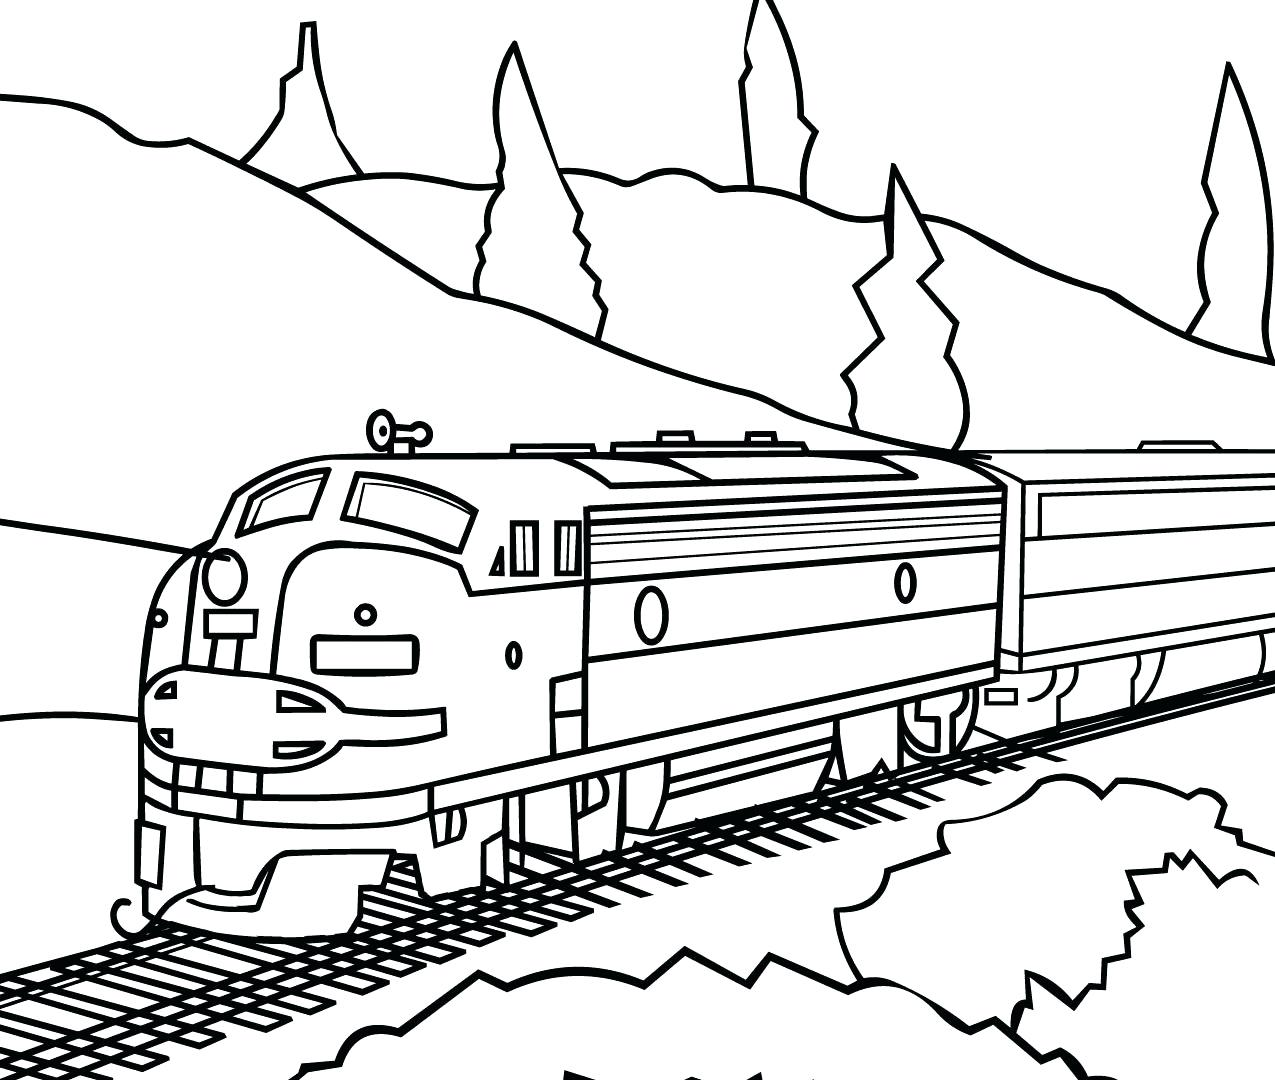 Train Caboose Drawing at GetDrawings.com | Free for personal use ...